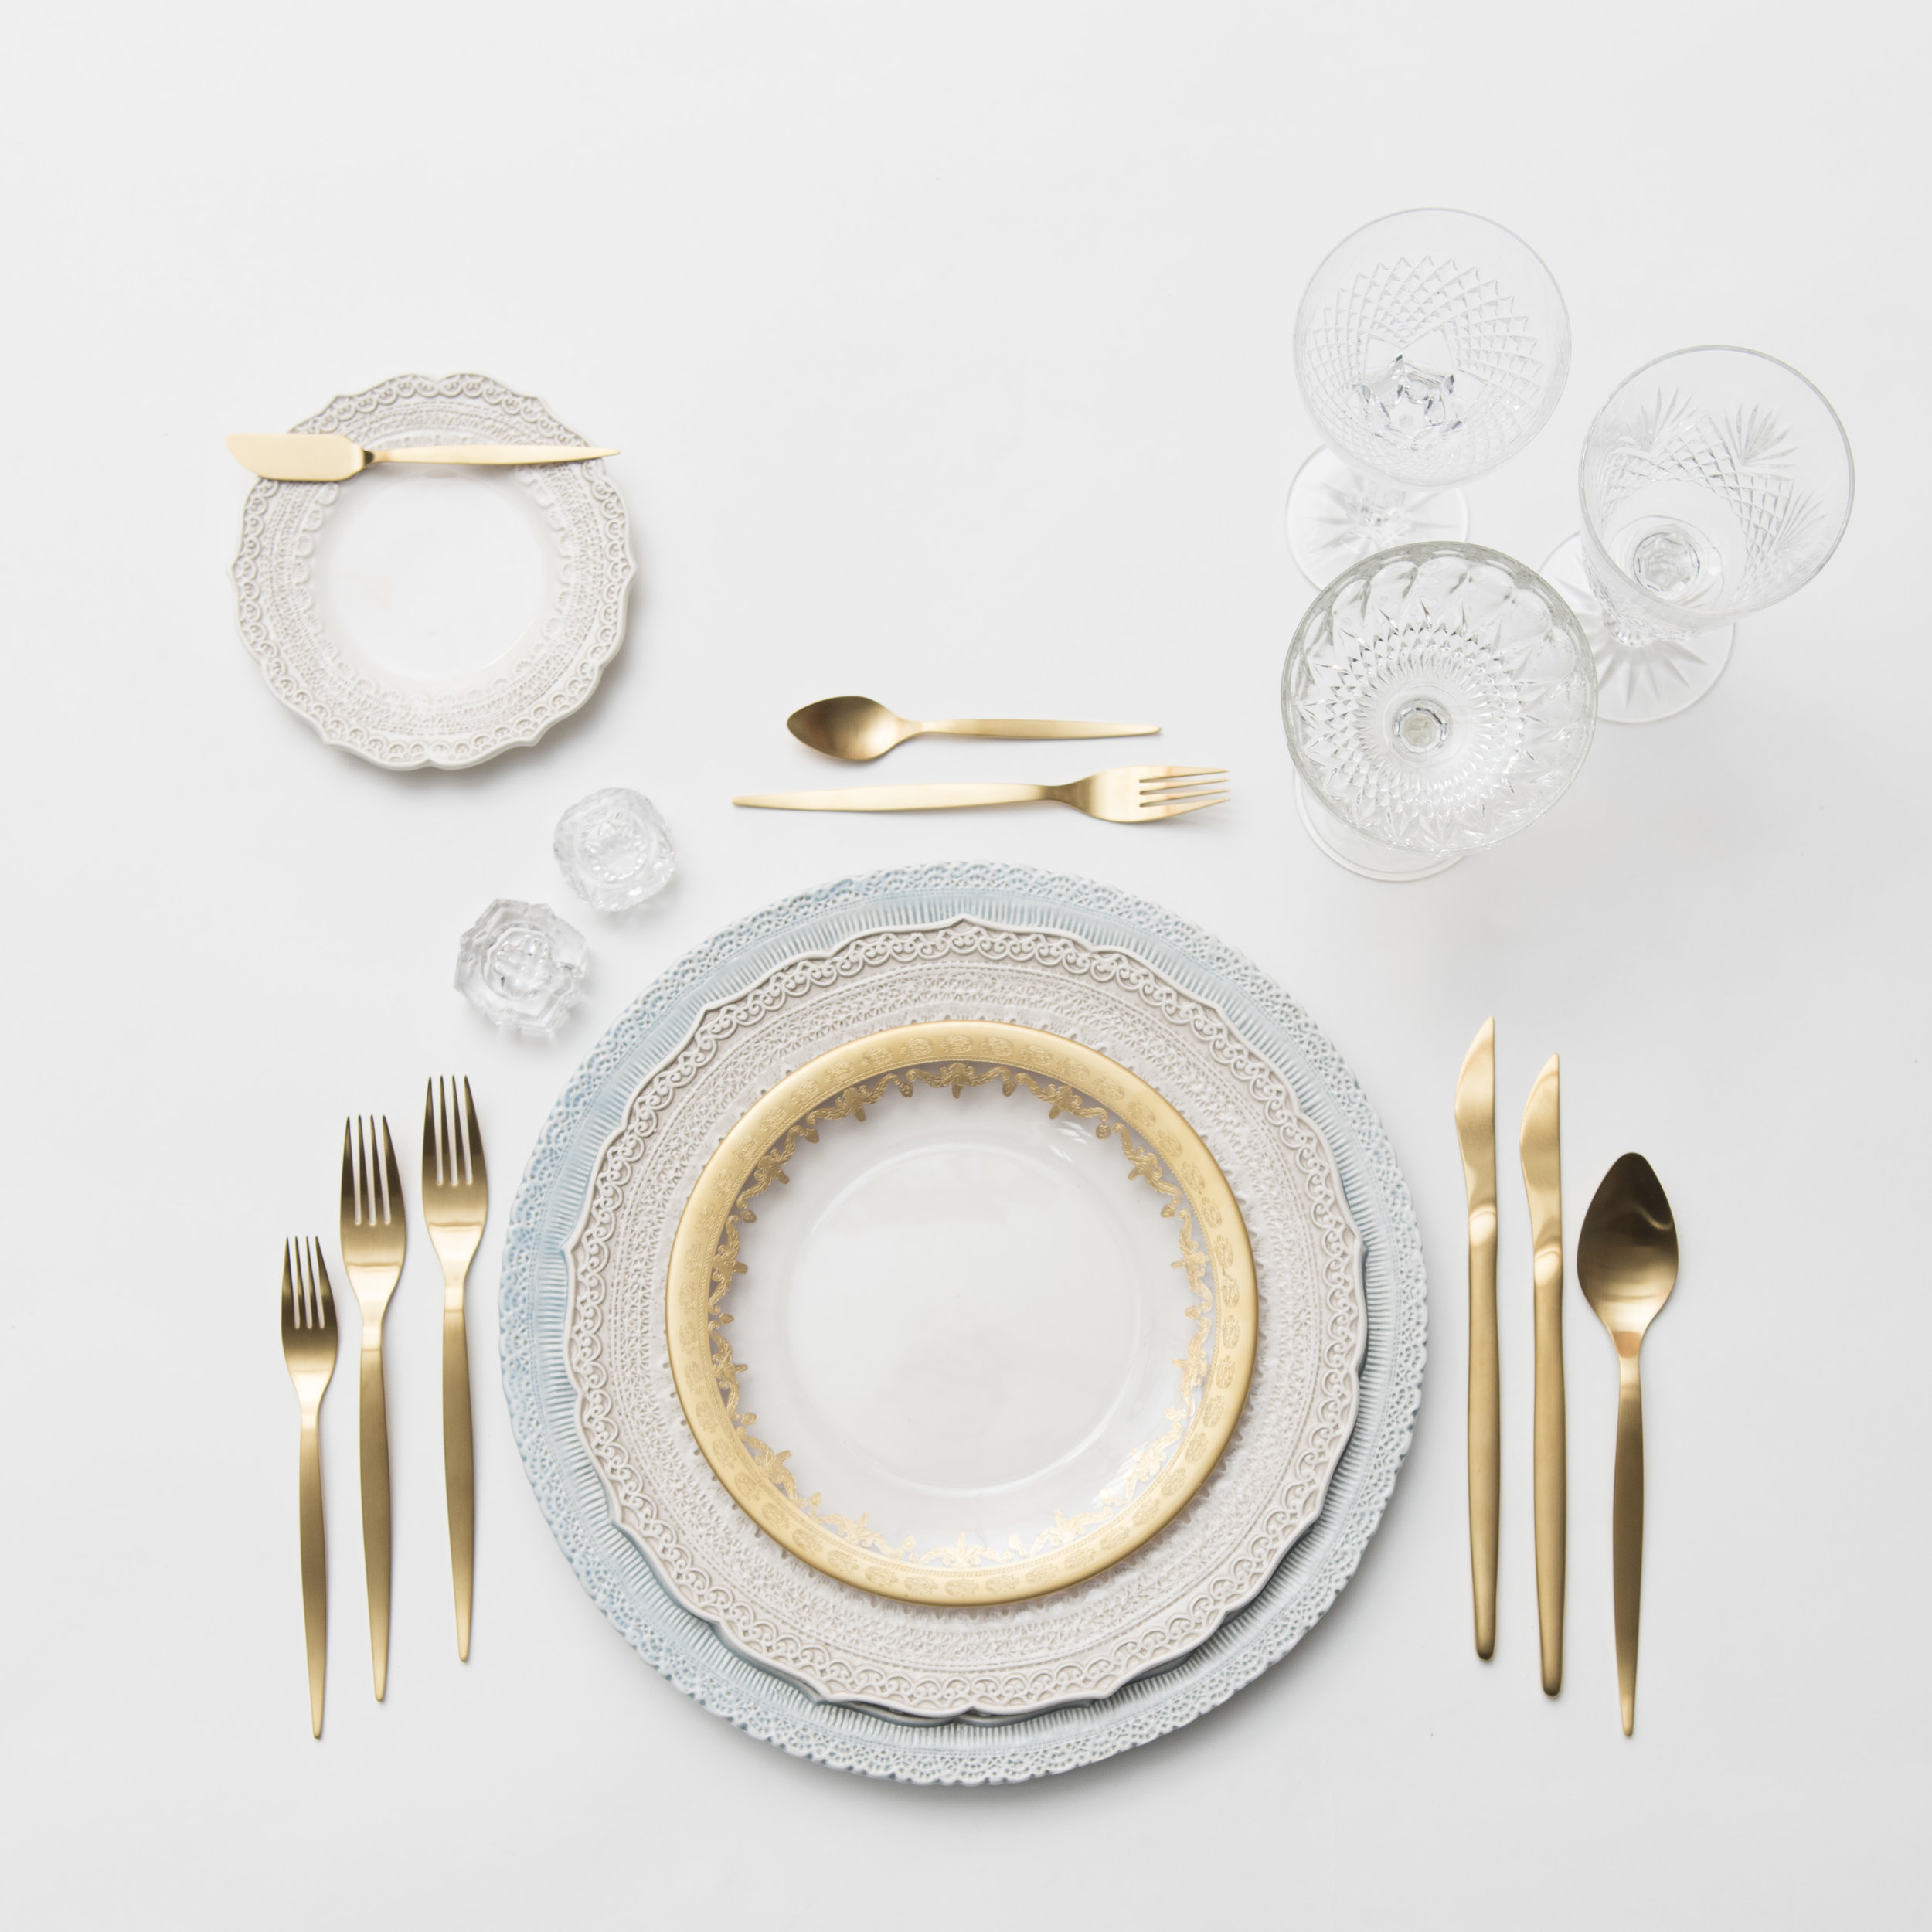 RENT: Lace Chargers in Dusty Blue + Lace Dinnerware in White + Versailles Glass Dinnerware in 24k Gold + Celeste Flatware in Matte Gold + Vintage Cut Crystal Goblets +Vintage Champagne Coupes + Antique Crystal Salt Cellars